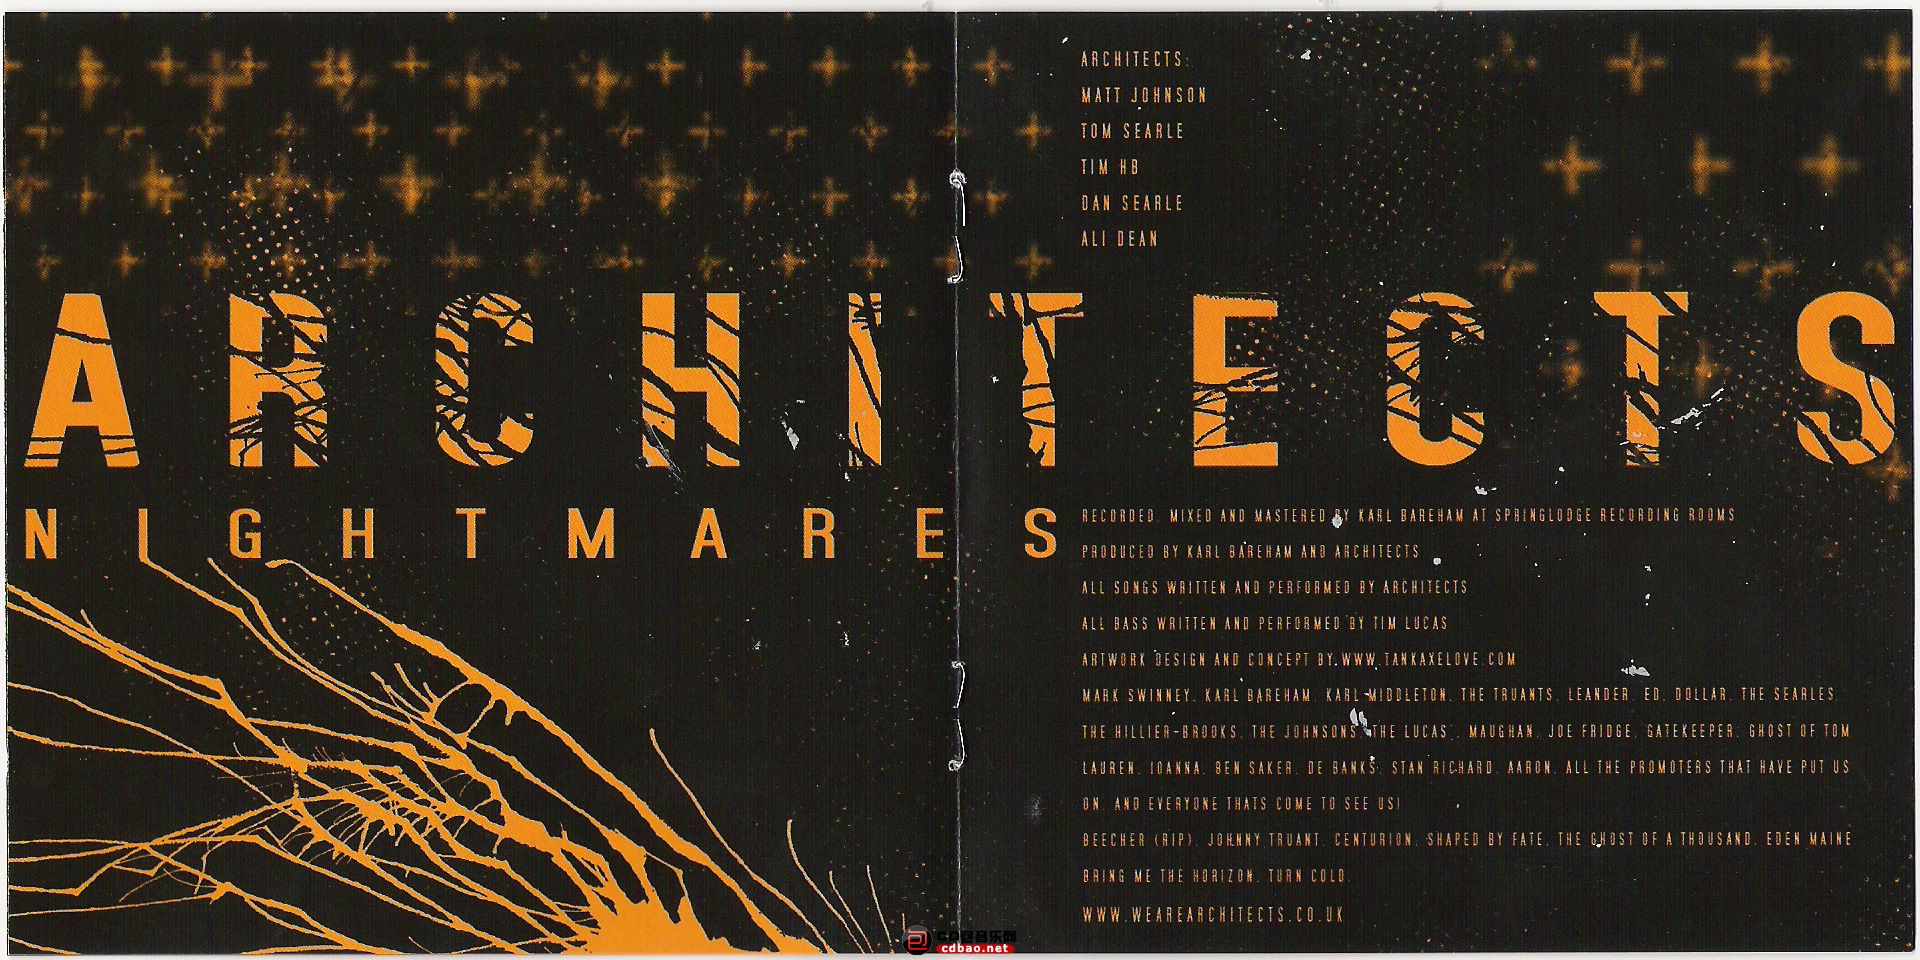 Architects - Nightmares - Booklet.jpg